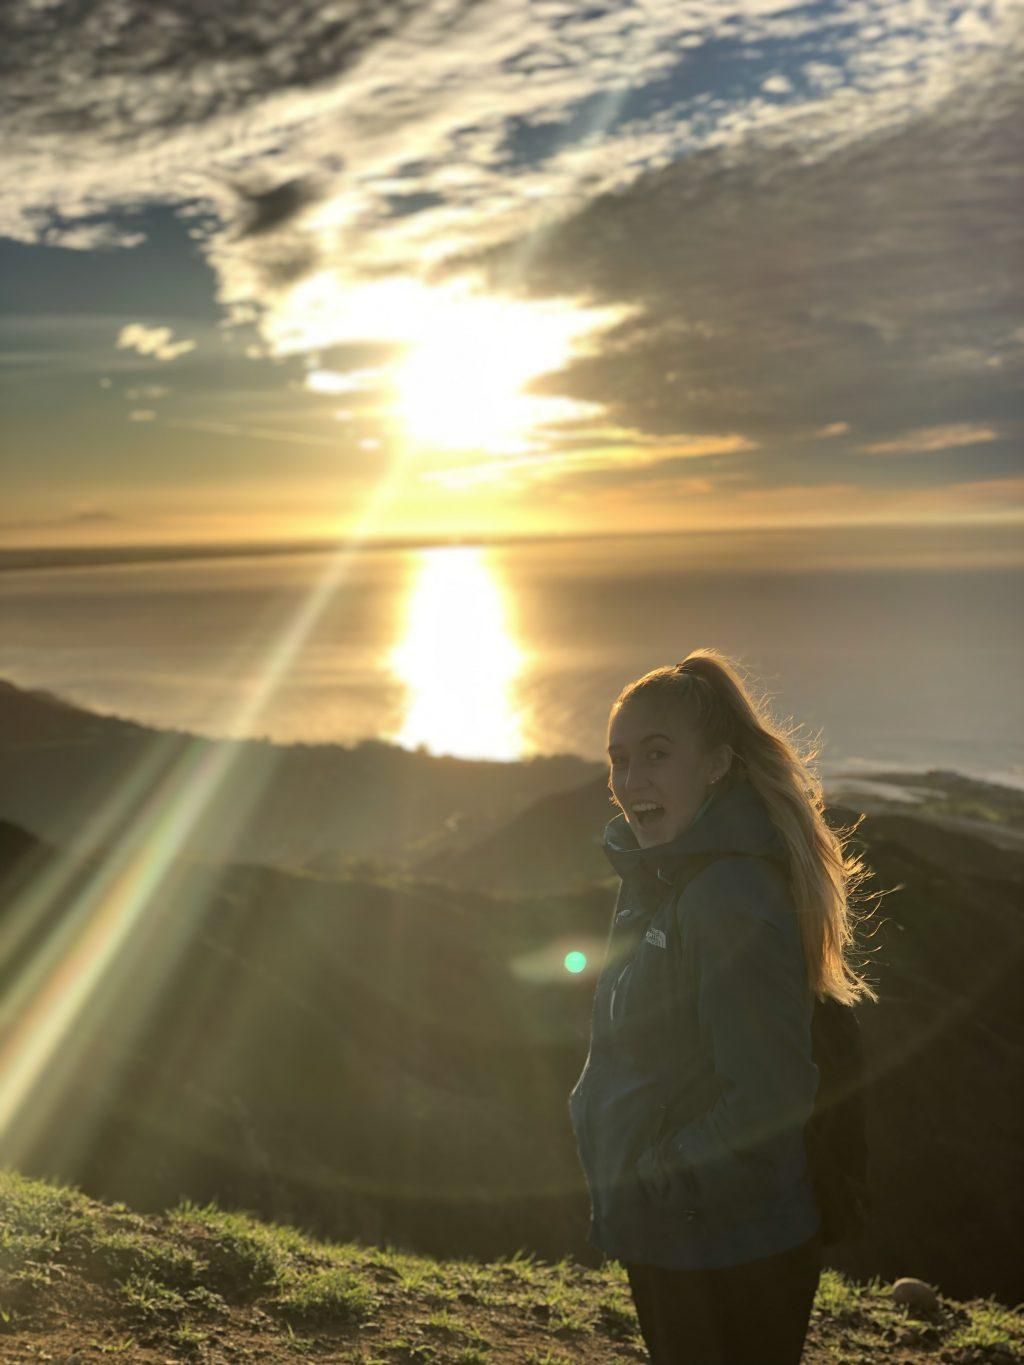 Morrison enjoys the ocean view during her hike to the Cross in Malibu in January 2019. She said loves to work out to relieve stress and get a break from schoolwork. Photo courtesy of Mackenzie Morrison